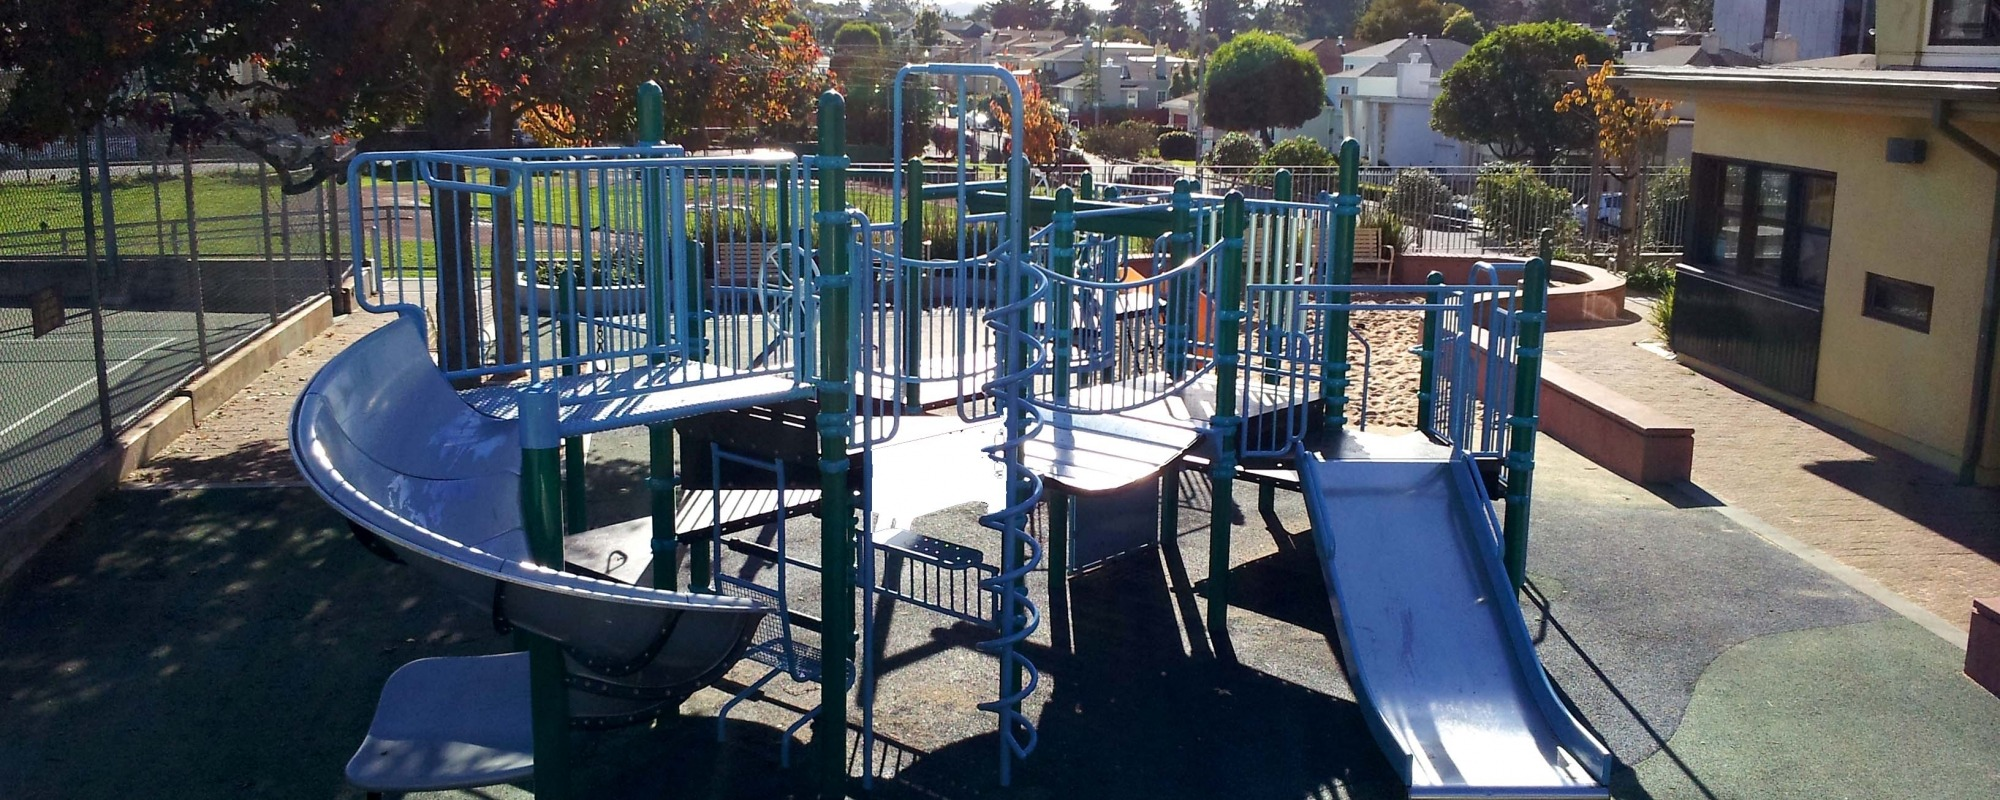 Junipero Serra Clubhouse and Playground